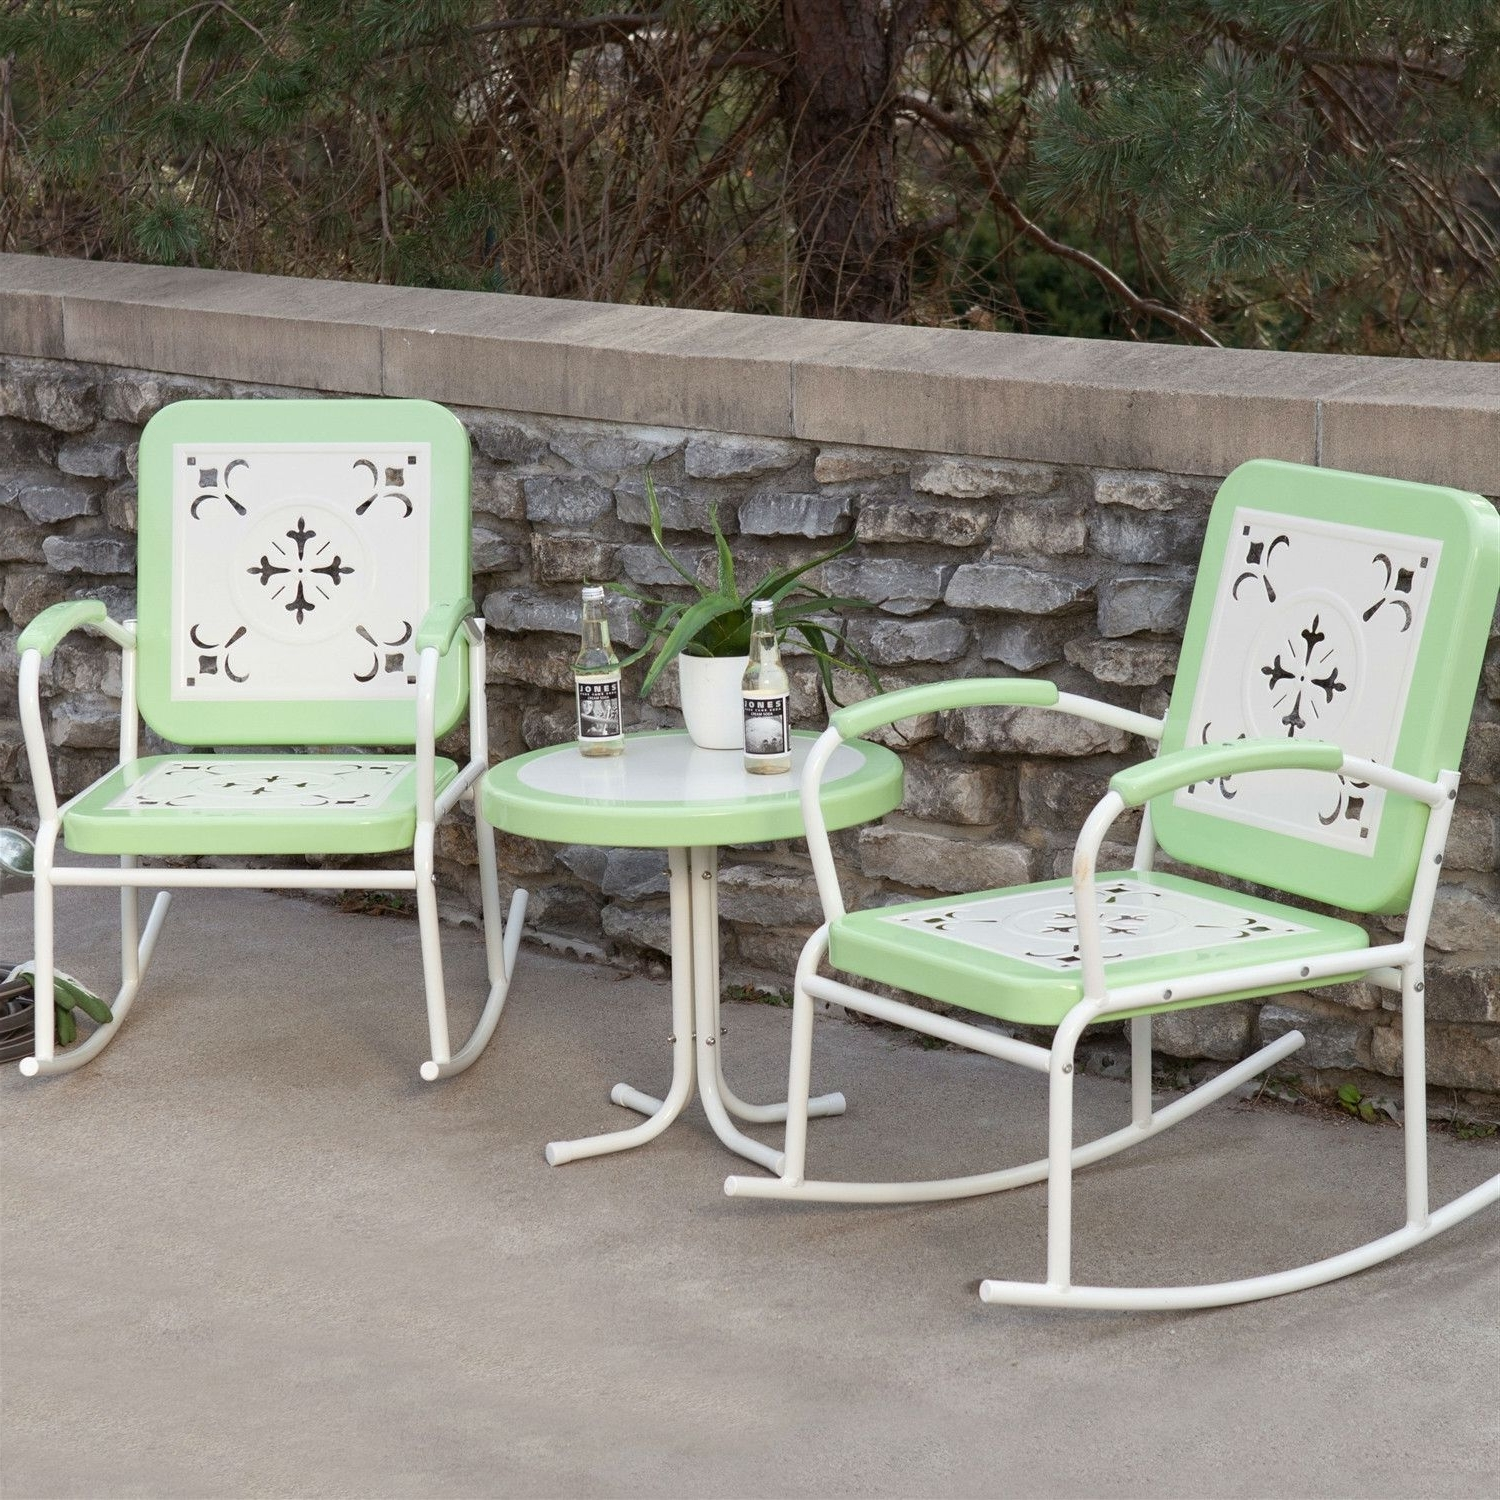 Best And Newest Mint Green Retro Patio 3 Piece Metal Rocker Rocking Chair Set Intended For Retro Outdoor Rocking Chairs (View 7 of 15)